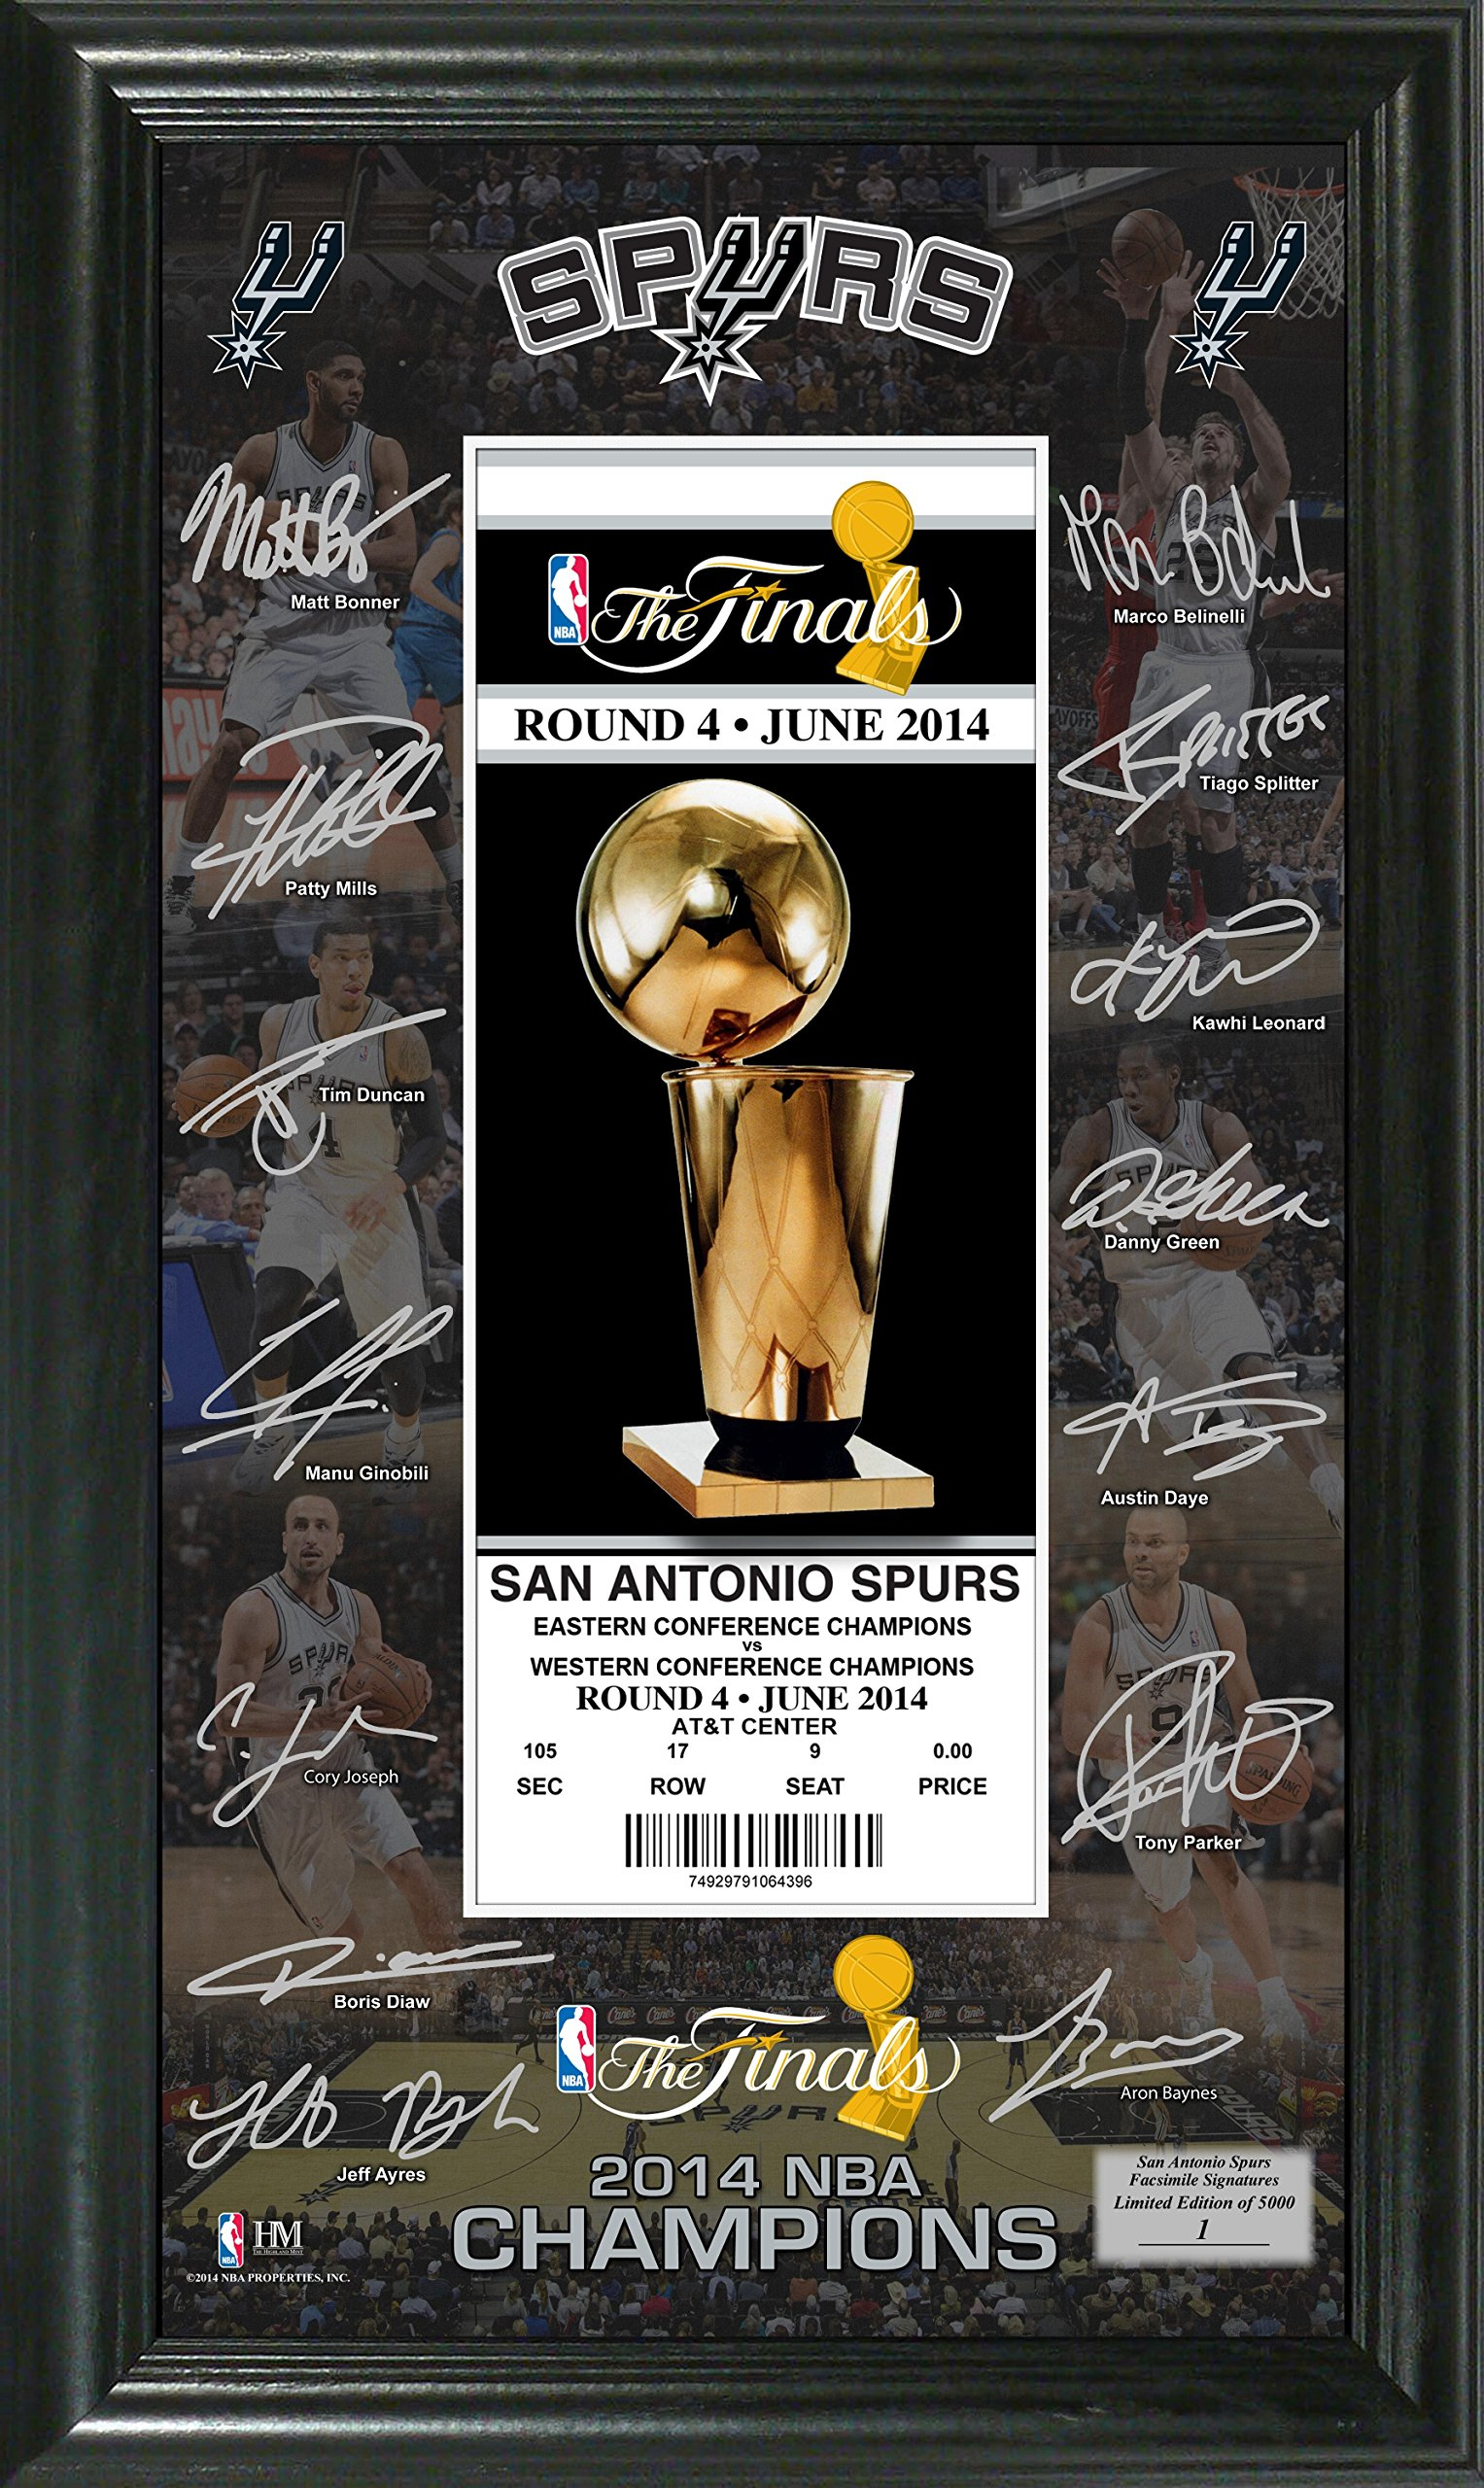 NBA San Antonio Spurs 2014 Champs Signature Ticket, Black, 22'' x 15'' x 4''